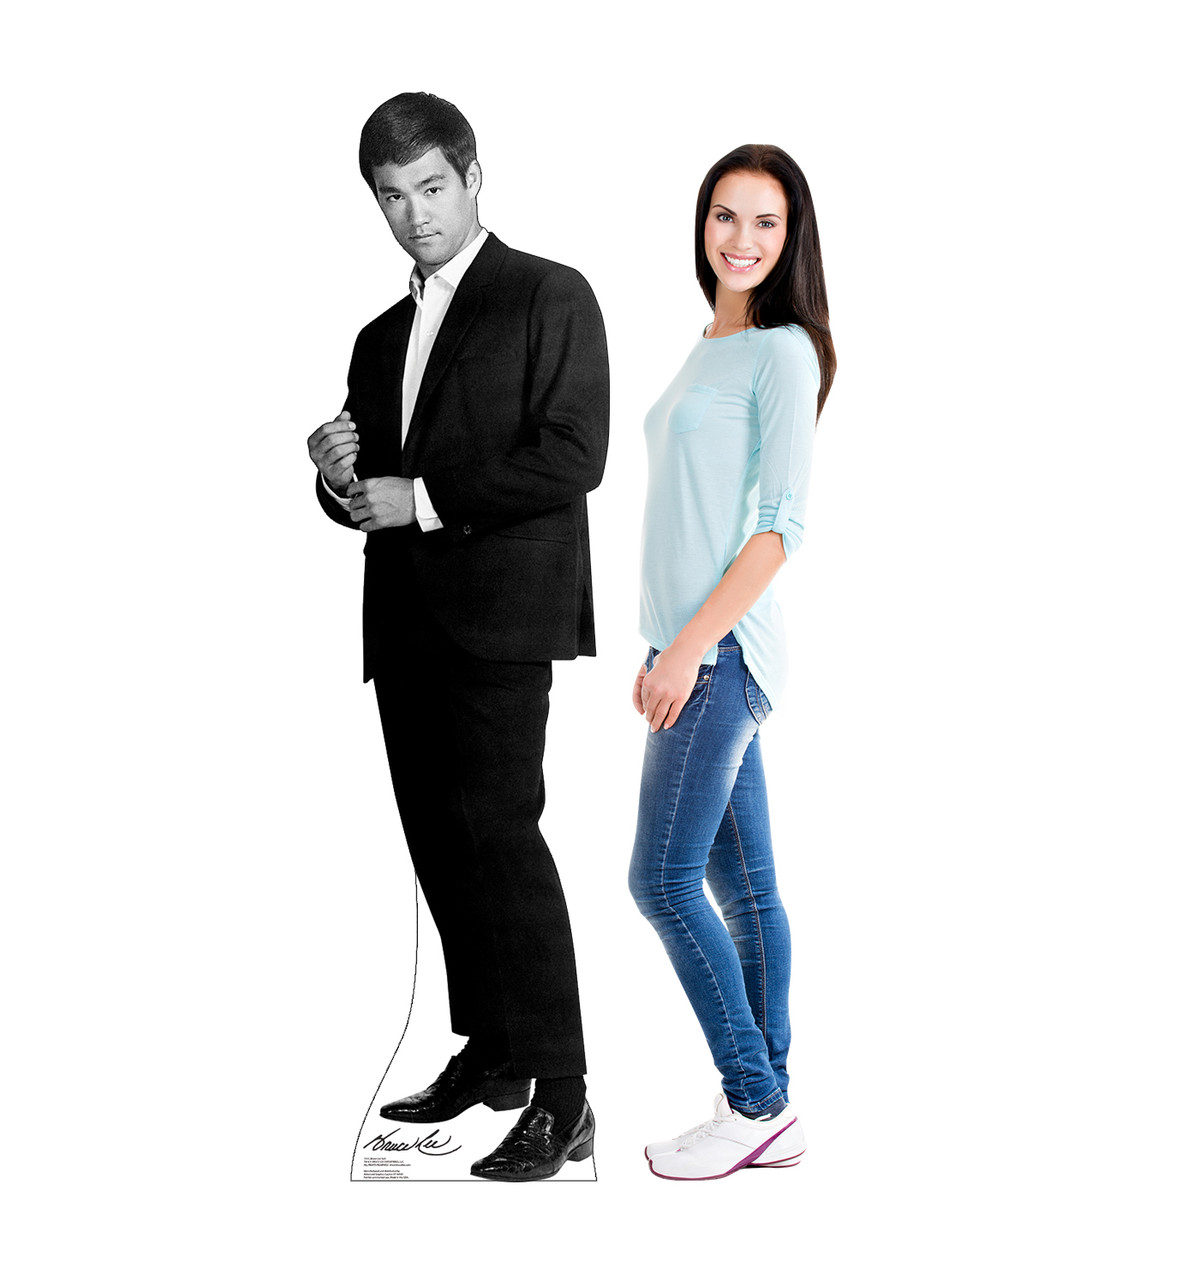 Bruce Lee Suit Cardboard Cutout 1515